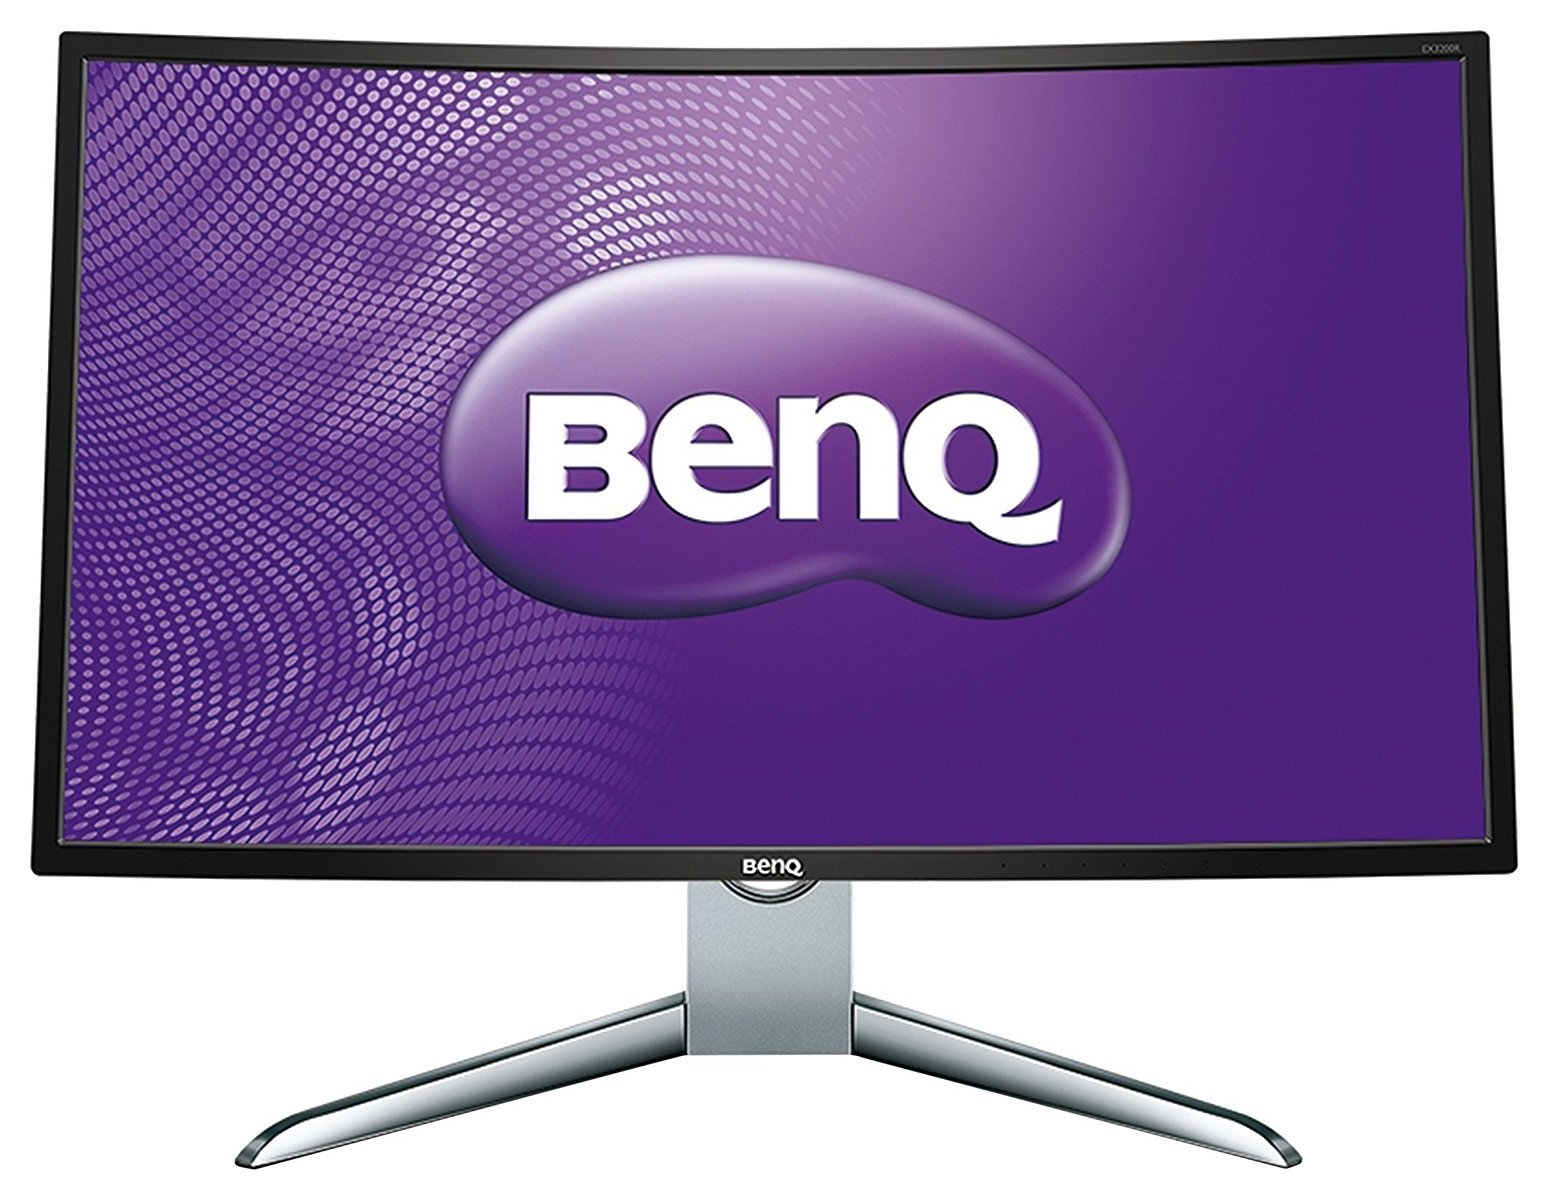 benq ex3200r led 31 5 inch curved monitor review. Black Bedroom Furniture Sets. Home Design Ideas